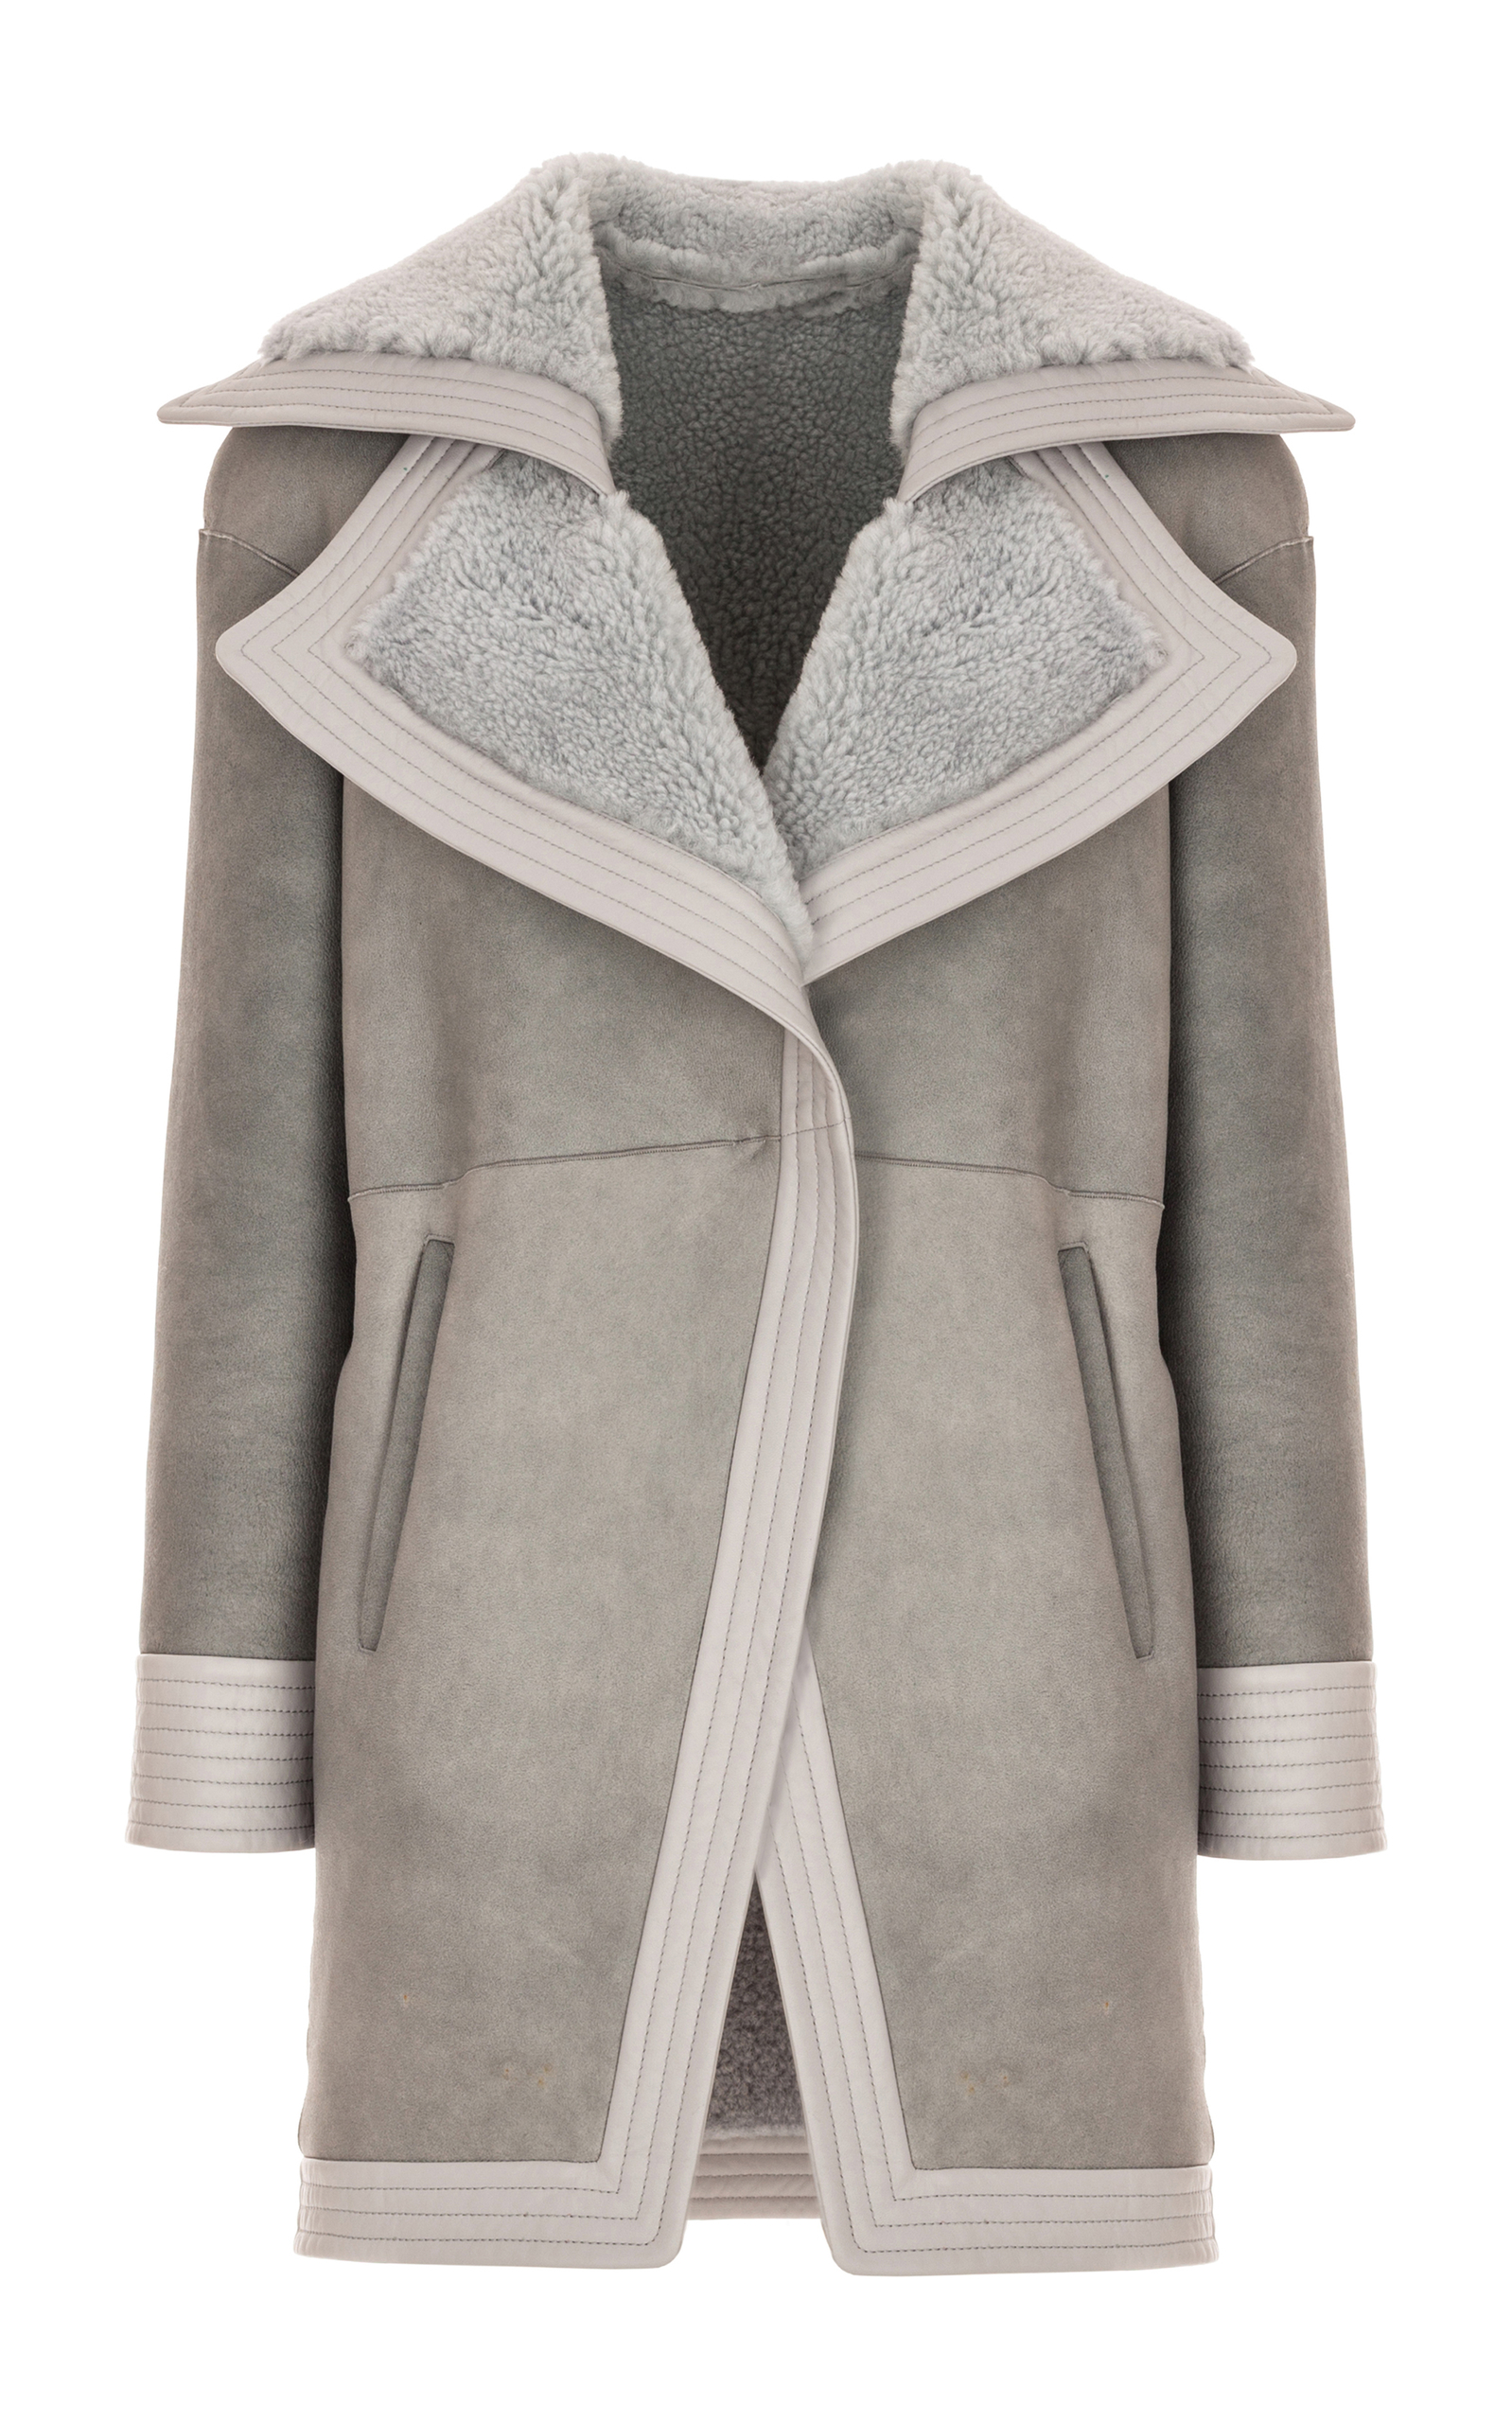 For Sale Sale Online Buy Cheap Cost Genny oversized sleeve coat Cheap Pick A Best Clearance Amazing Price JORKX9n3h1